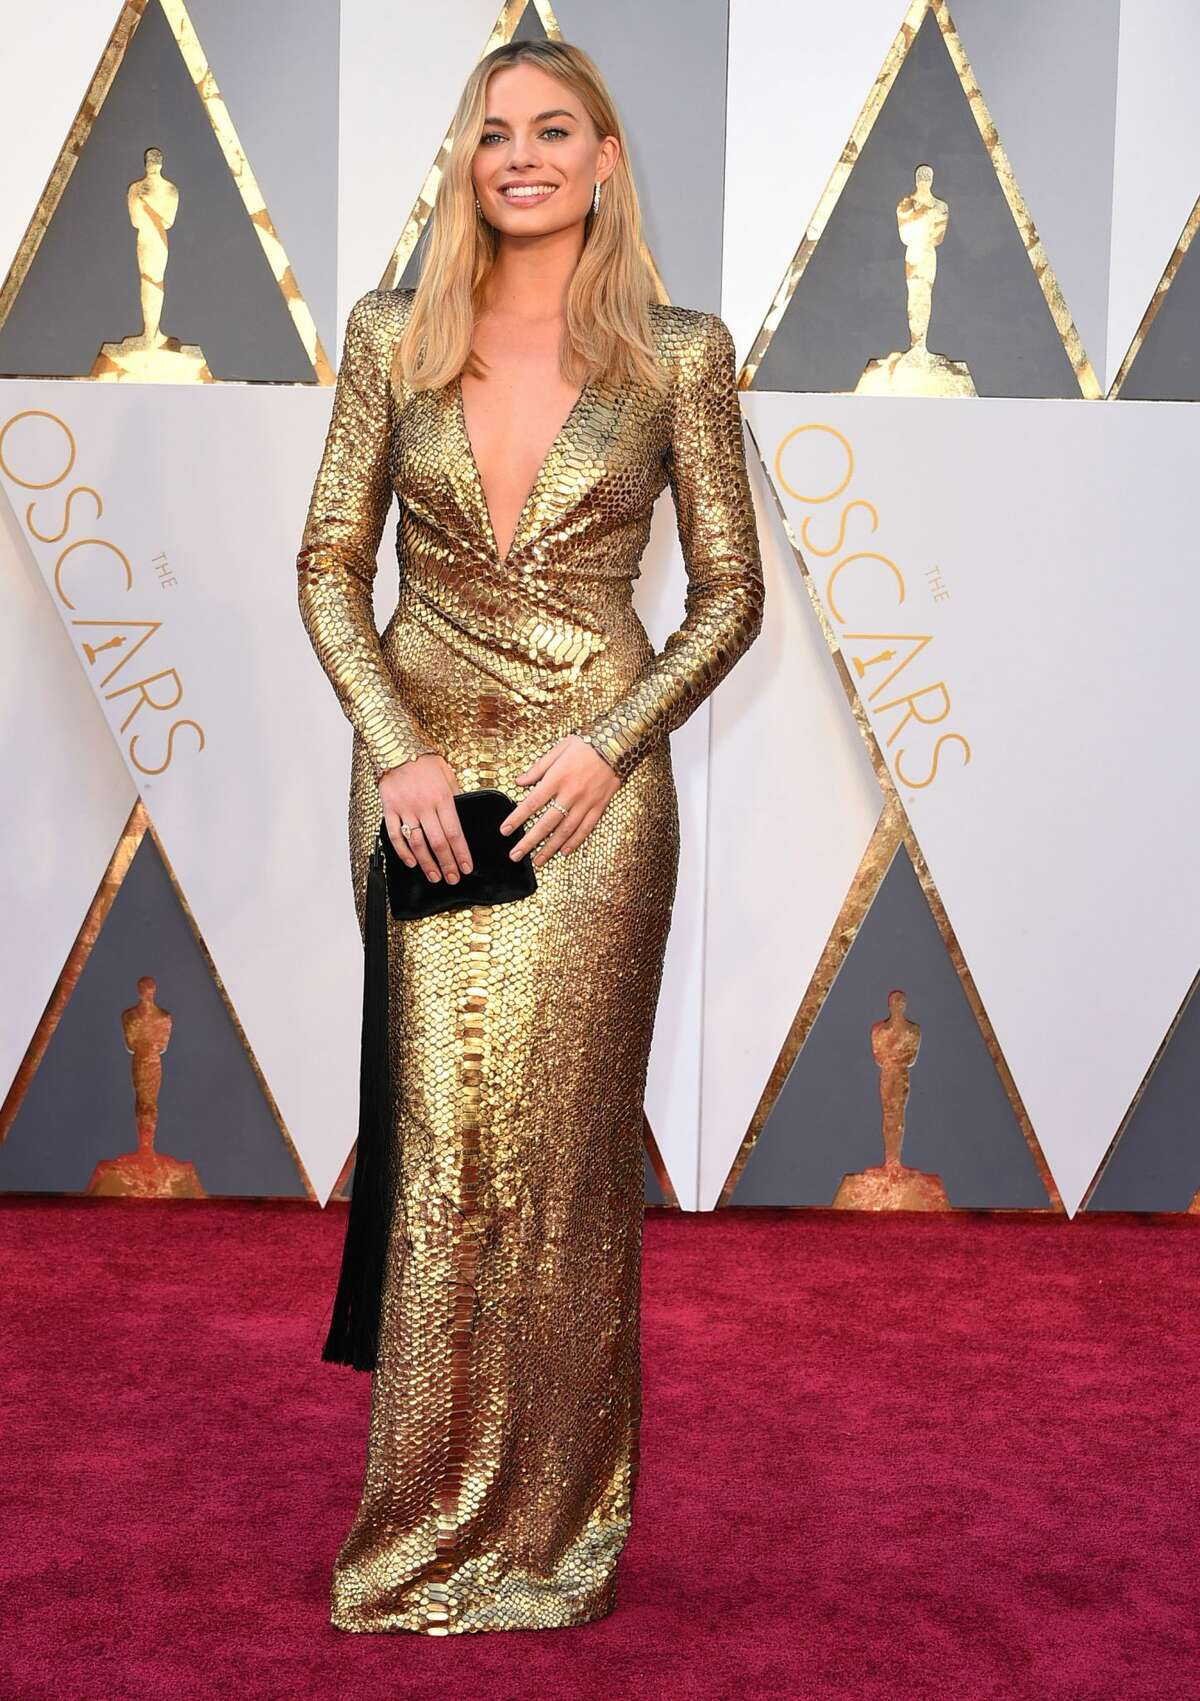 Best: Margot Robbie is a shimmering dream. Her gown looks like liquid gold poured on her. Event: 88th Annual Academy Awards